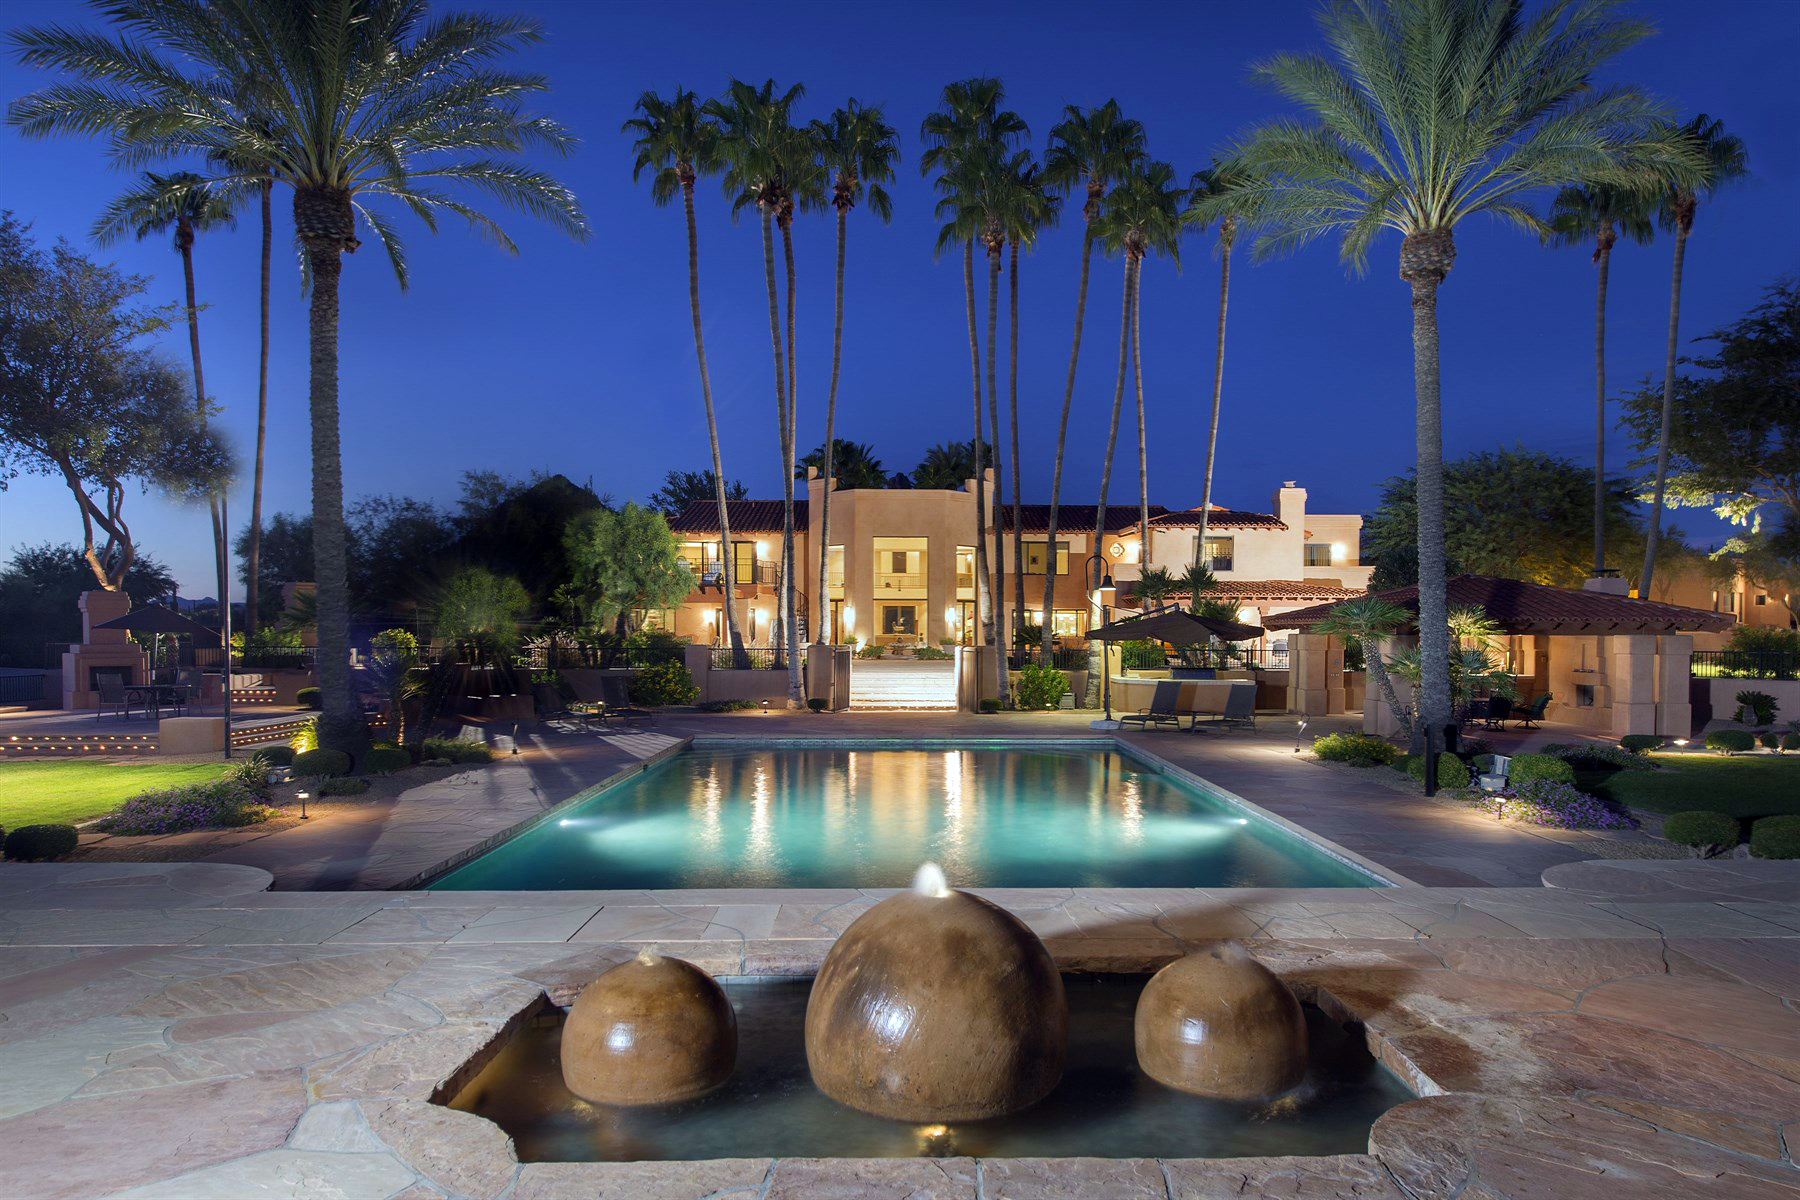 独户住宅 为 销售 在 Equestrian Luxury Living on 12 Glorious Acres Representing Oasis Ranch 10015 E Happy Valley Rd Scottsdale, 亚利桑那州 85255 美国